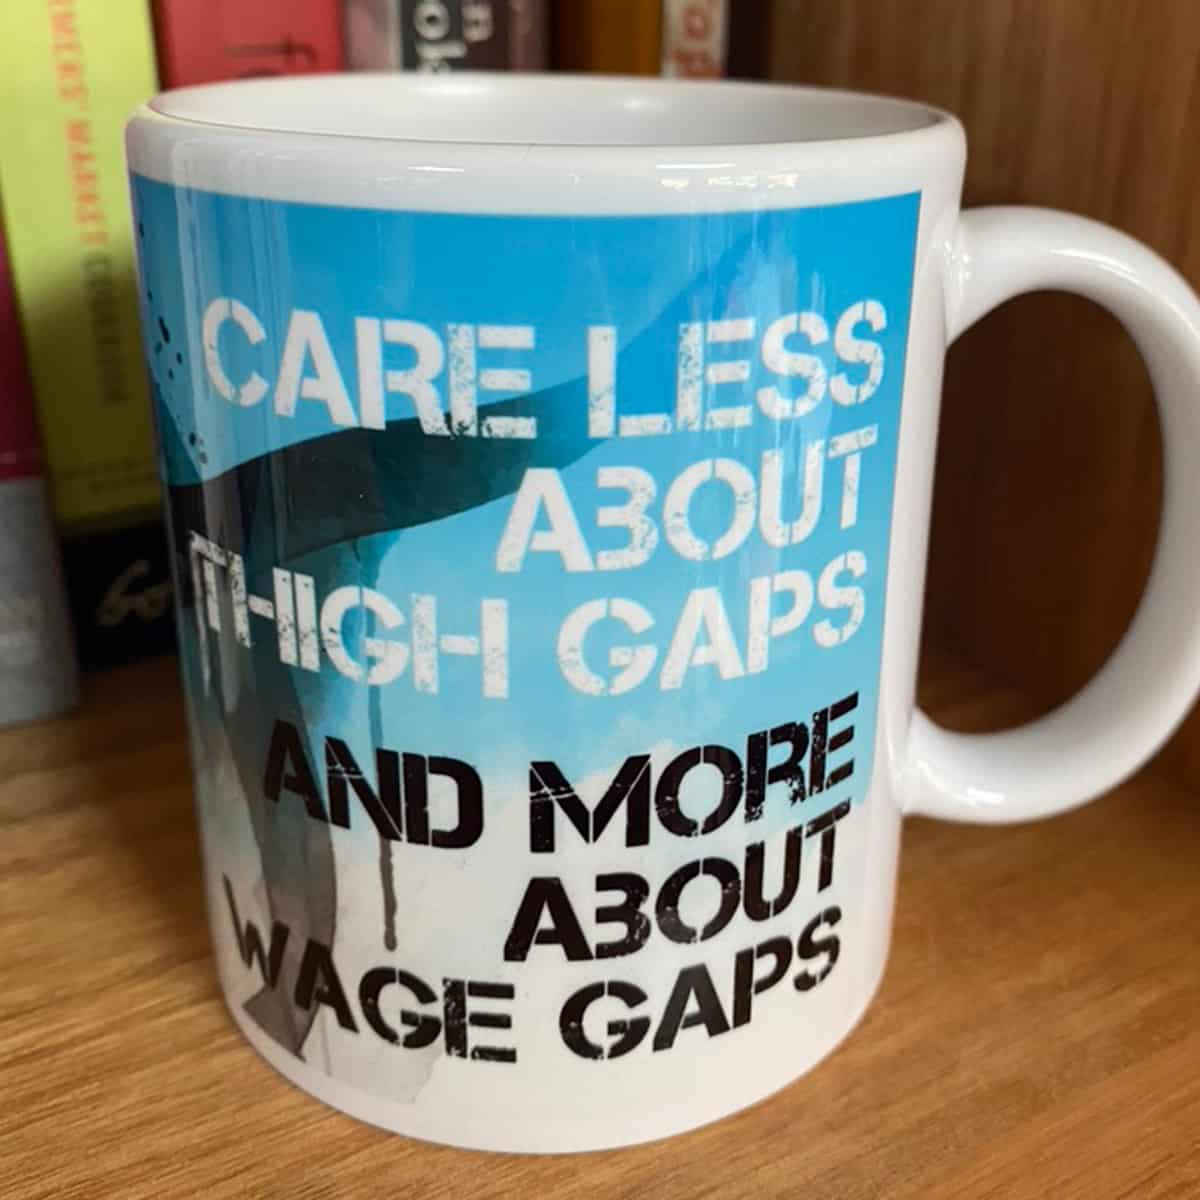 MUG – Thigh Gaps_wage Gaps By Look Mama-